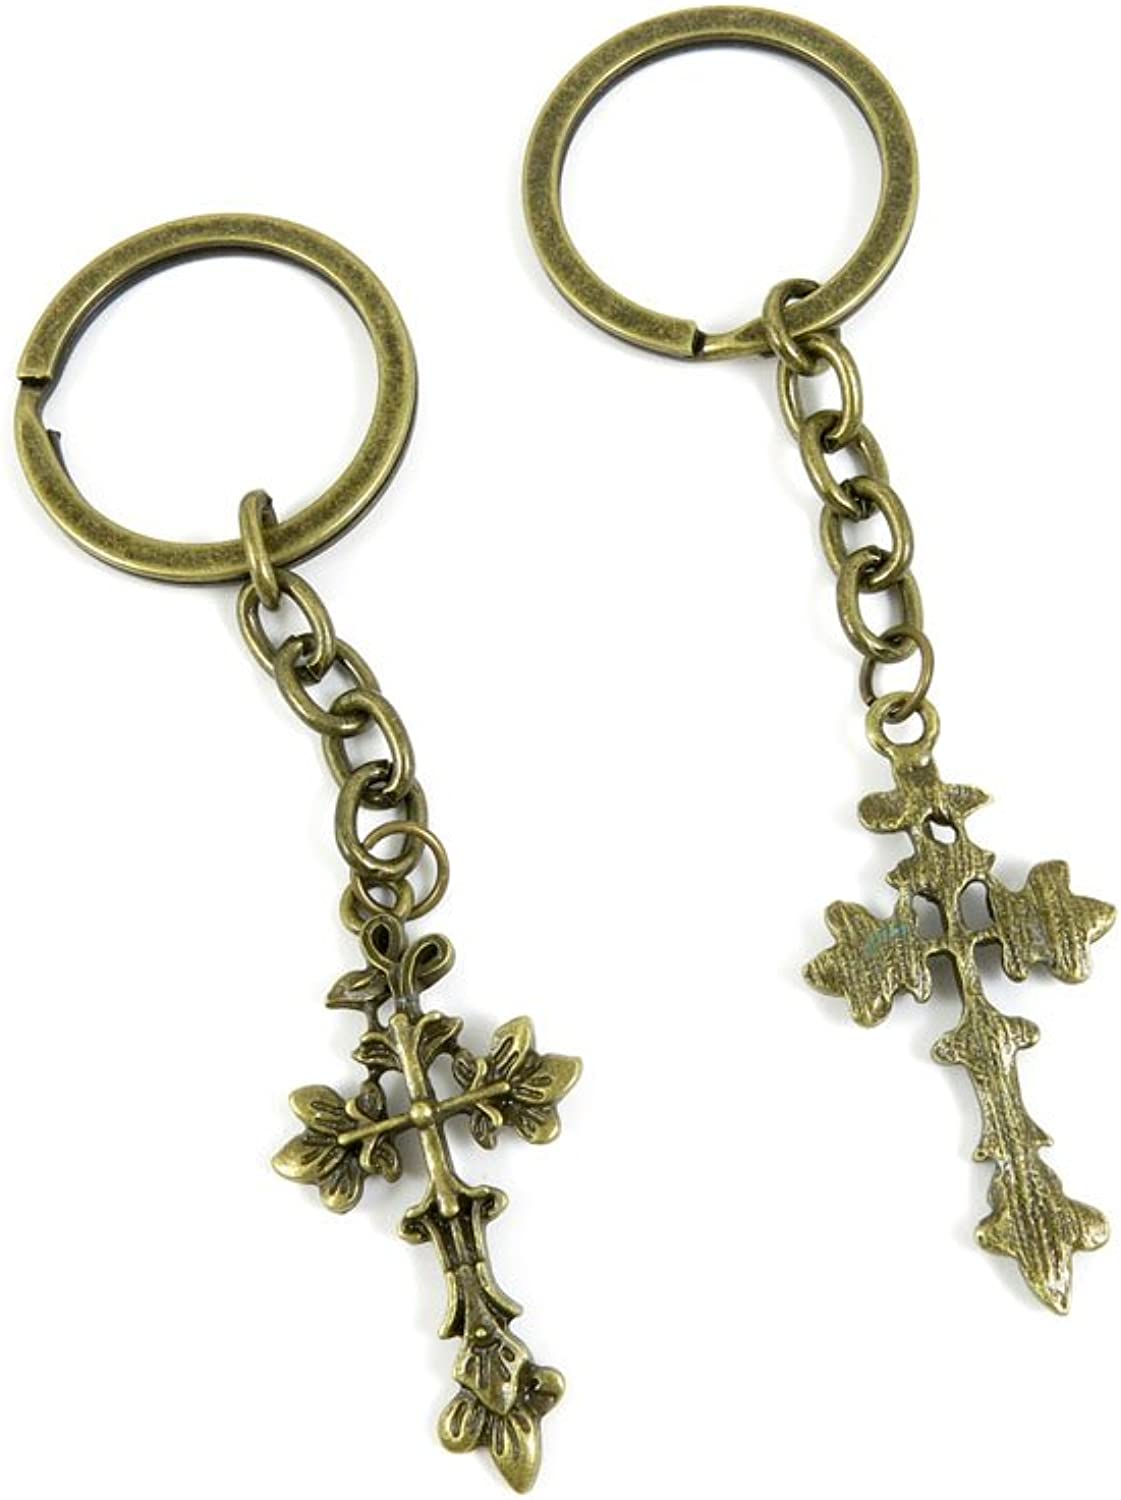 160 Pieces Fashion Jewelry Keyring Keychain Door Car Key Tag Ring Chain Supplier Supply Wholesale Bulk Lots A3OL6 Leaves Latin Cross